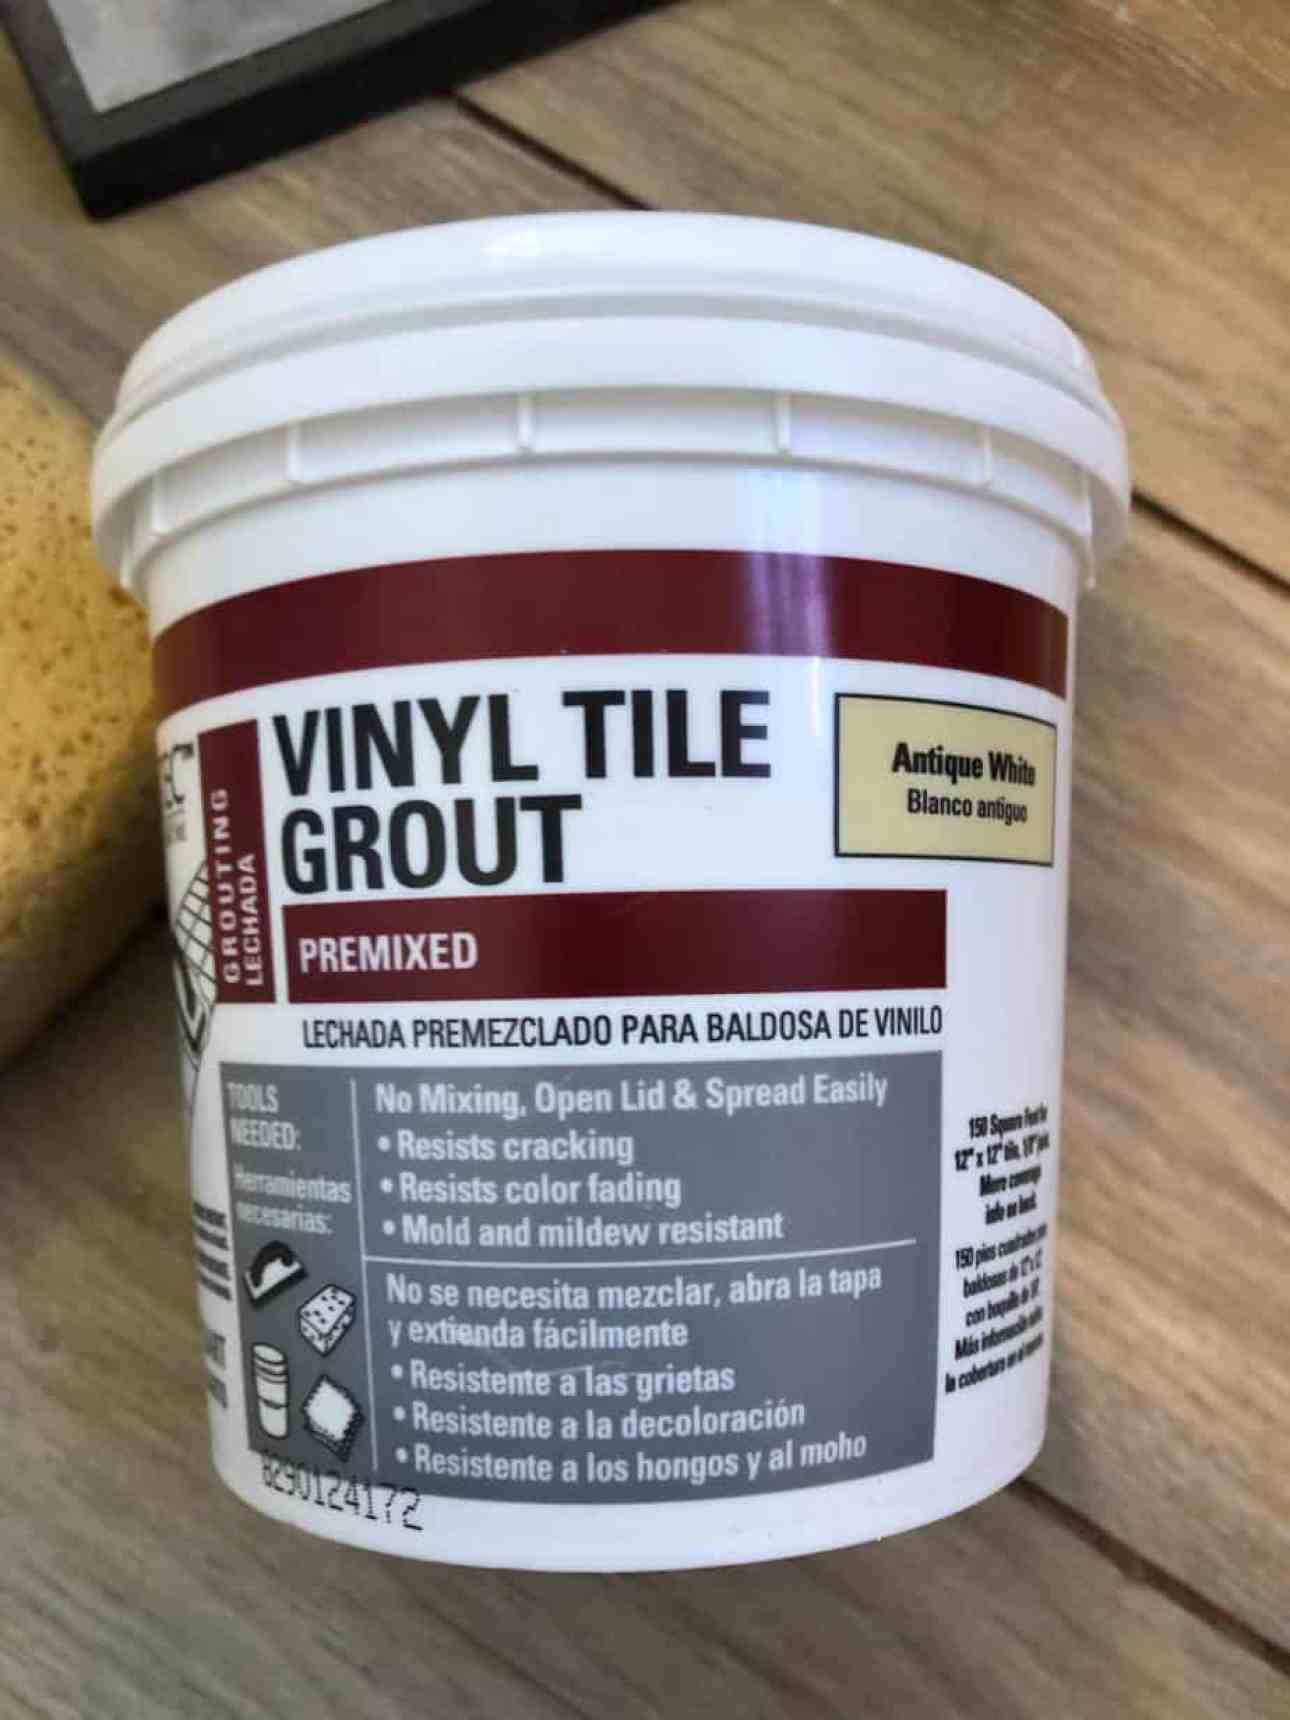 A pail of grout.